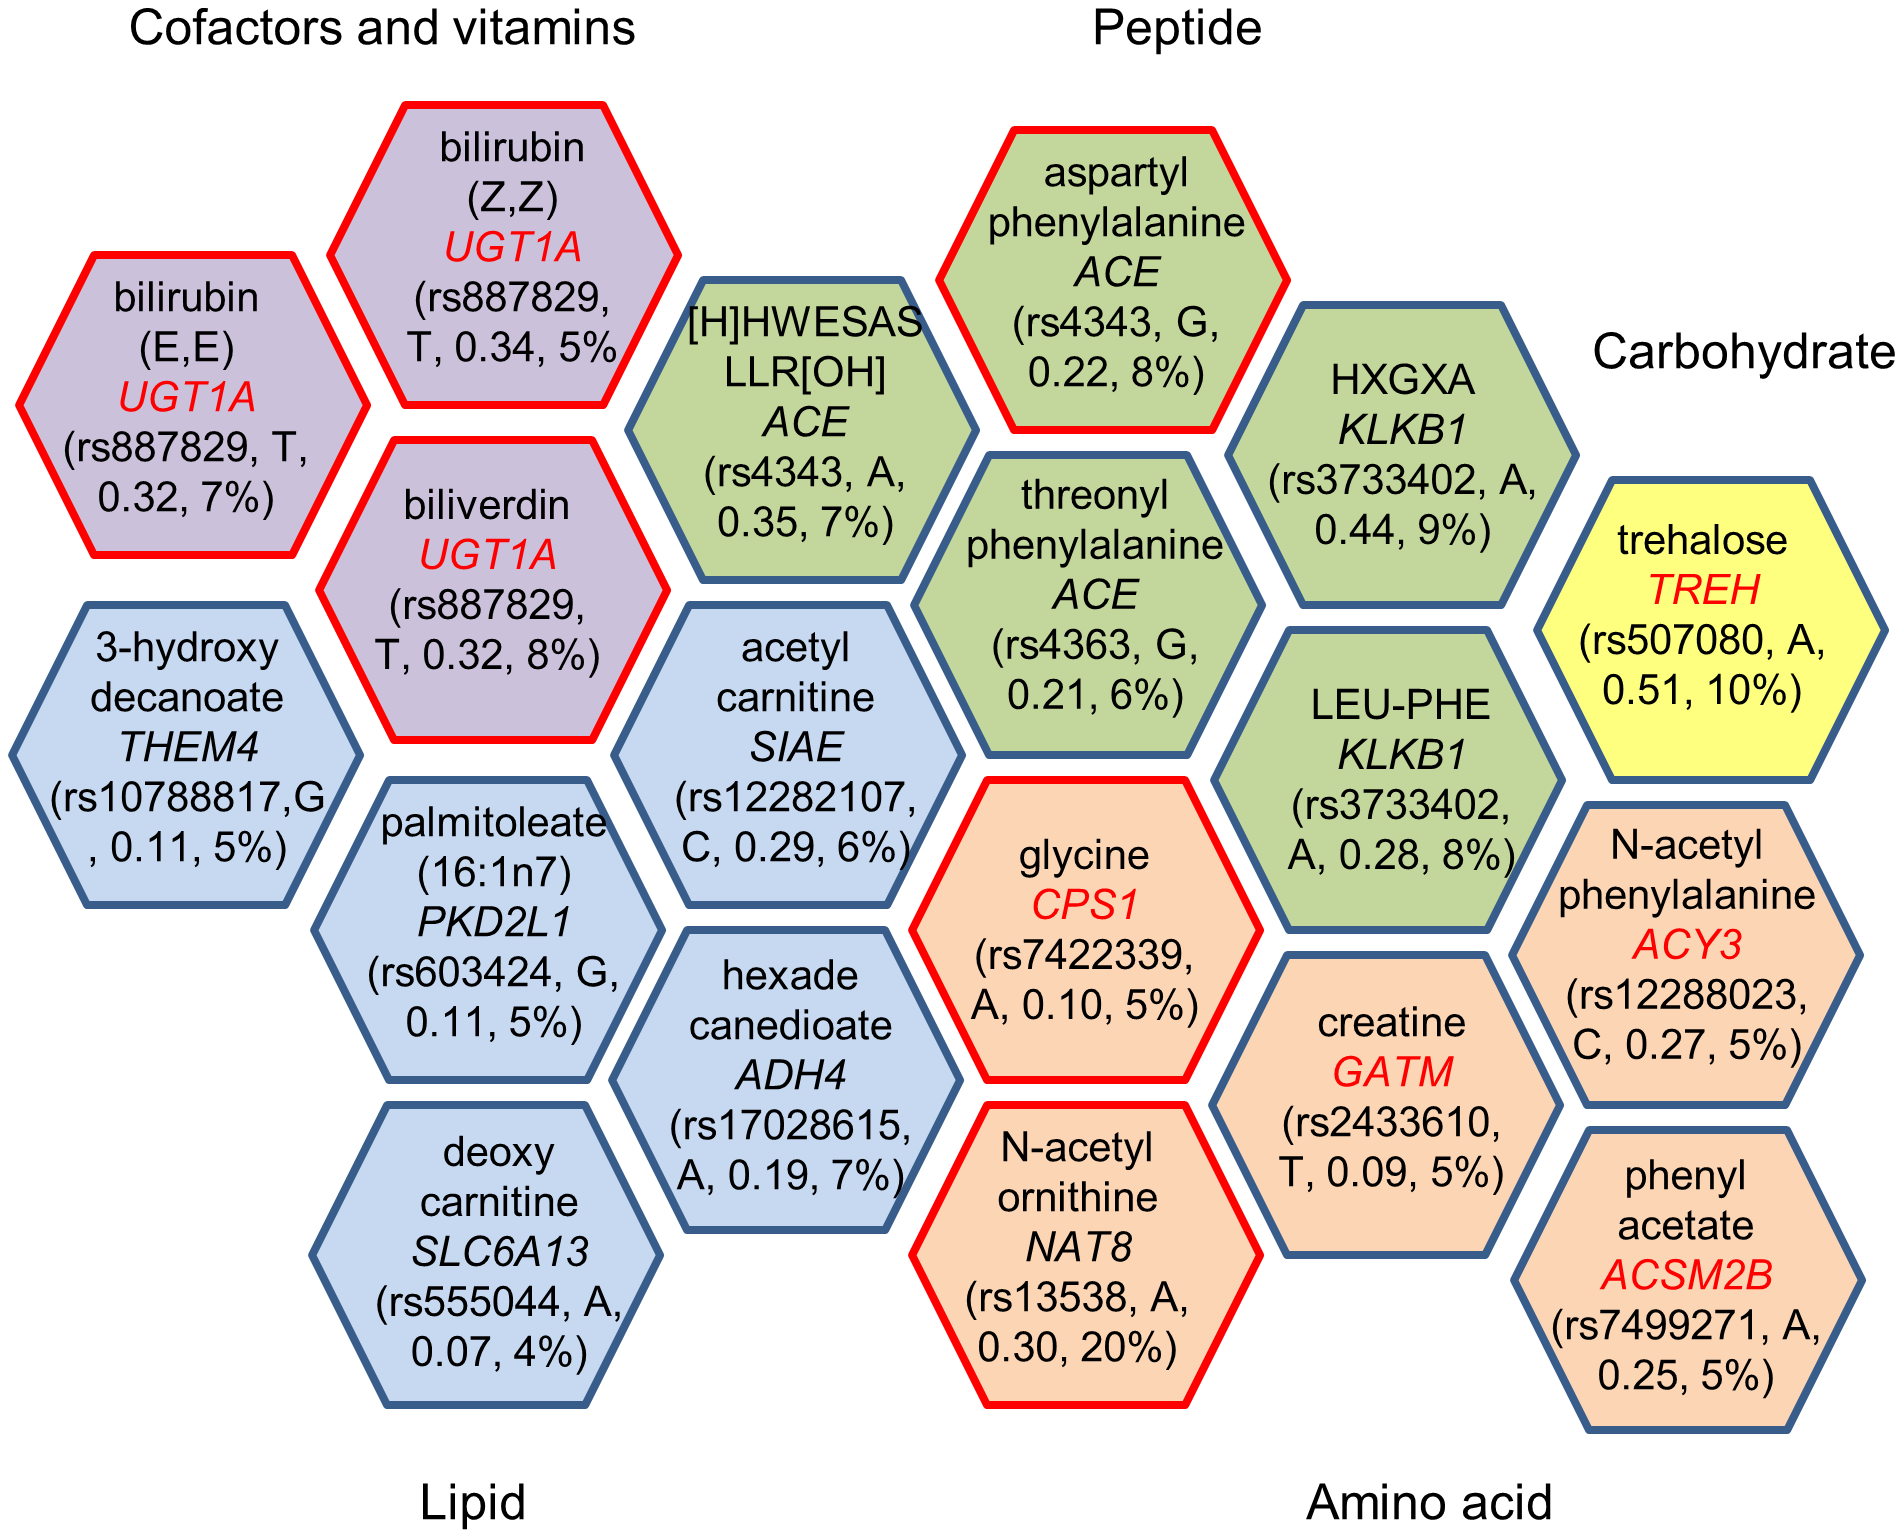 Genome-wide significant loci and human metabolic traits among African Americans in ARIC.